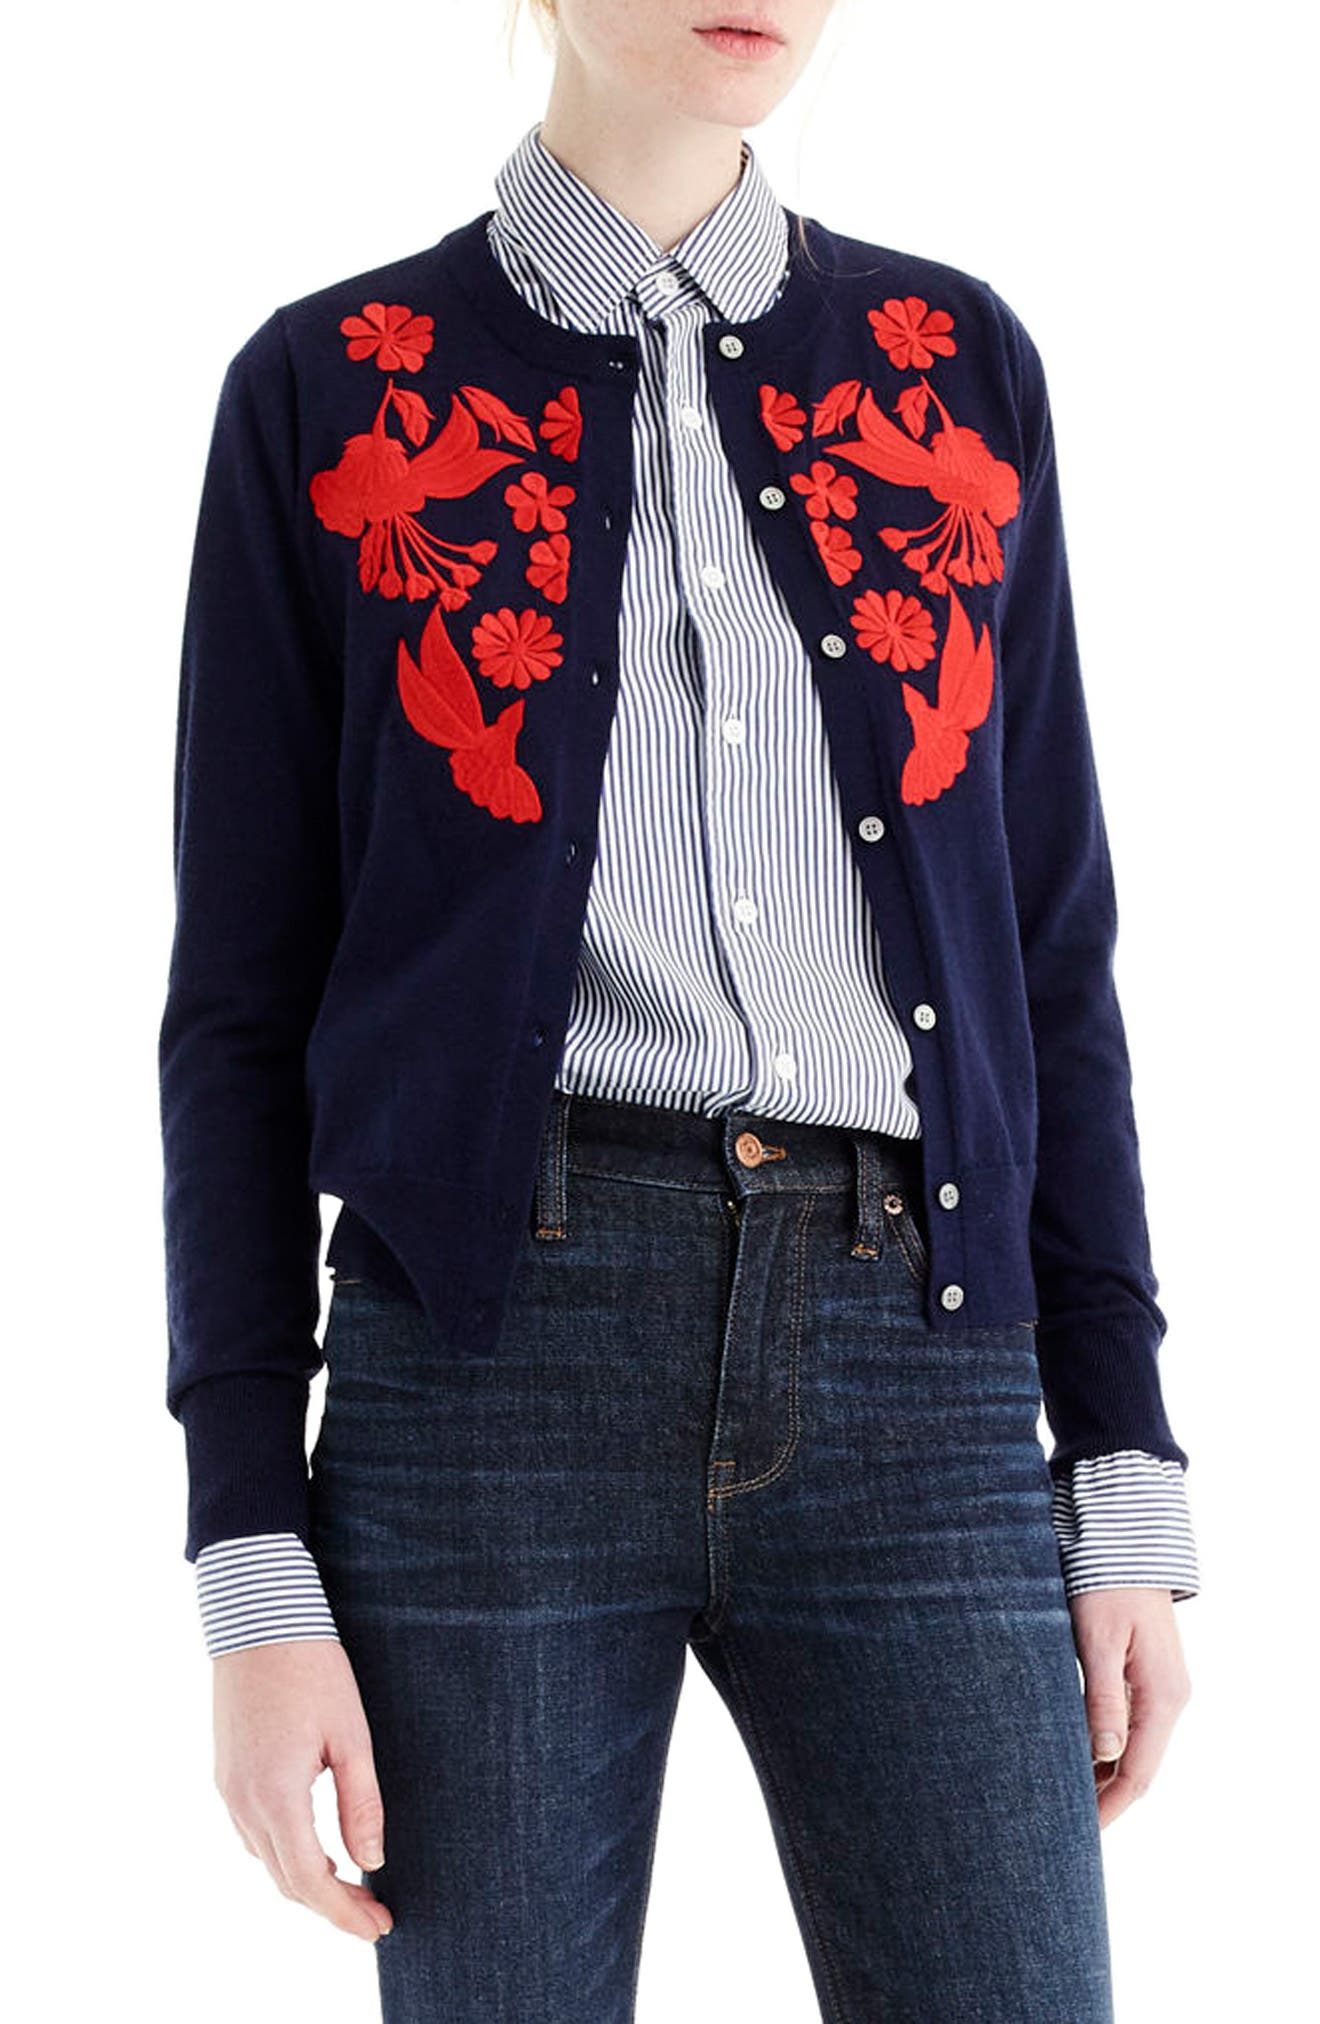 J.Crew Embroidered Lightweight Merino Wool Jackie Cardigan,                         Main,                         color, Navy